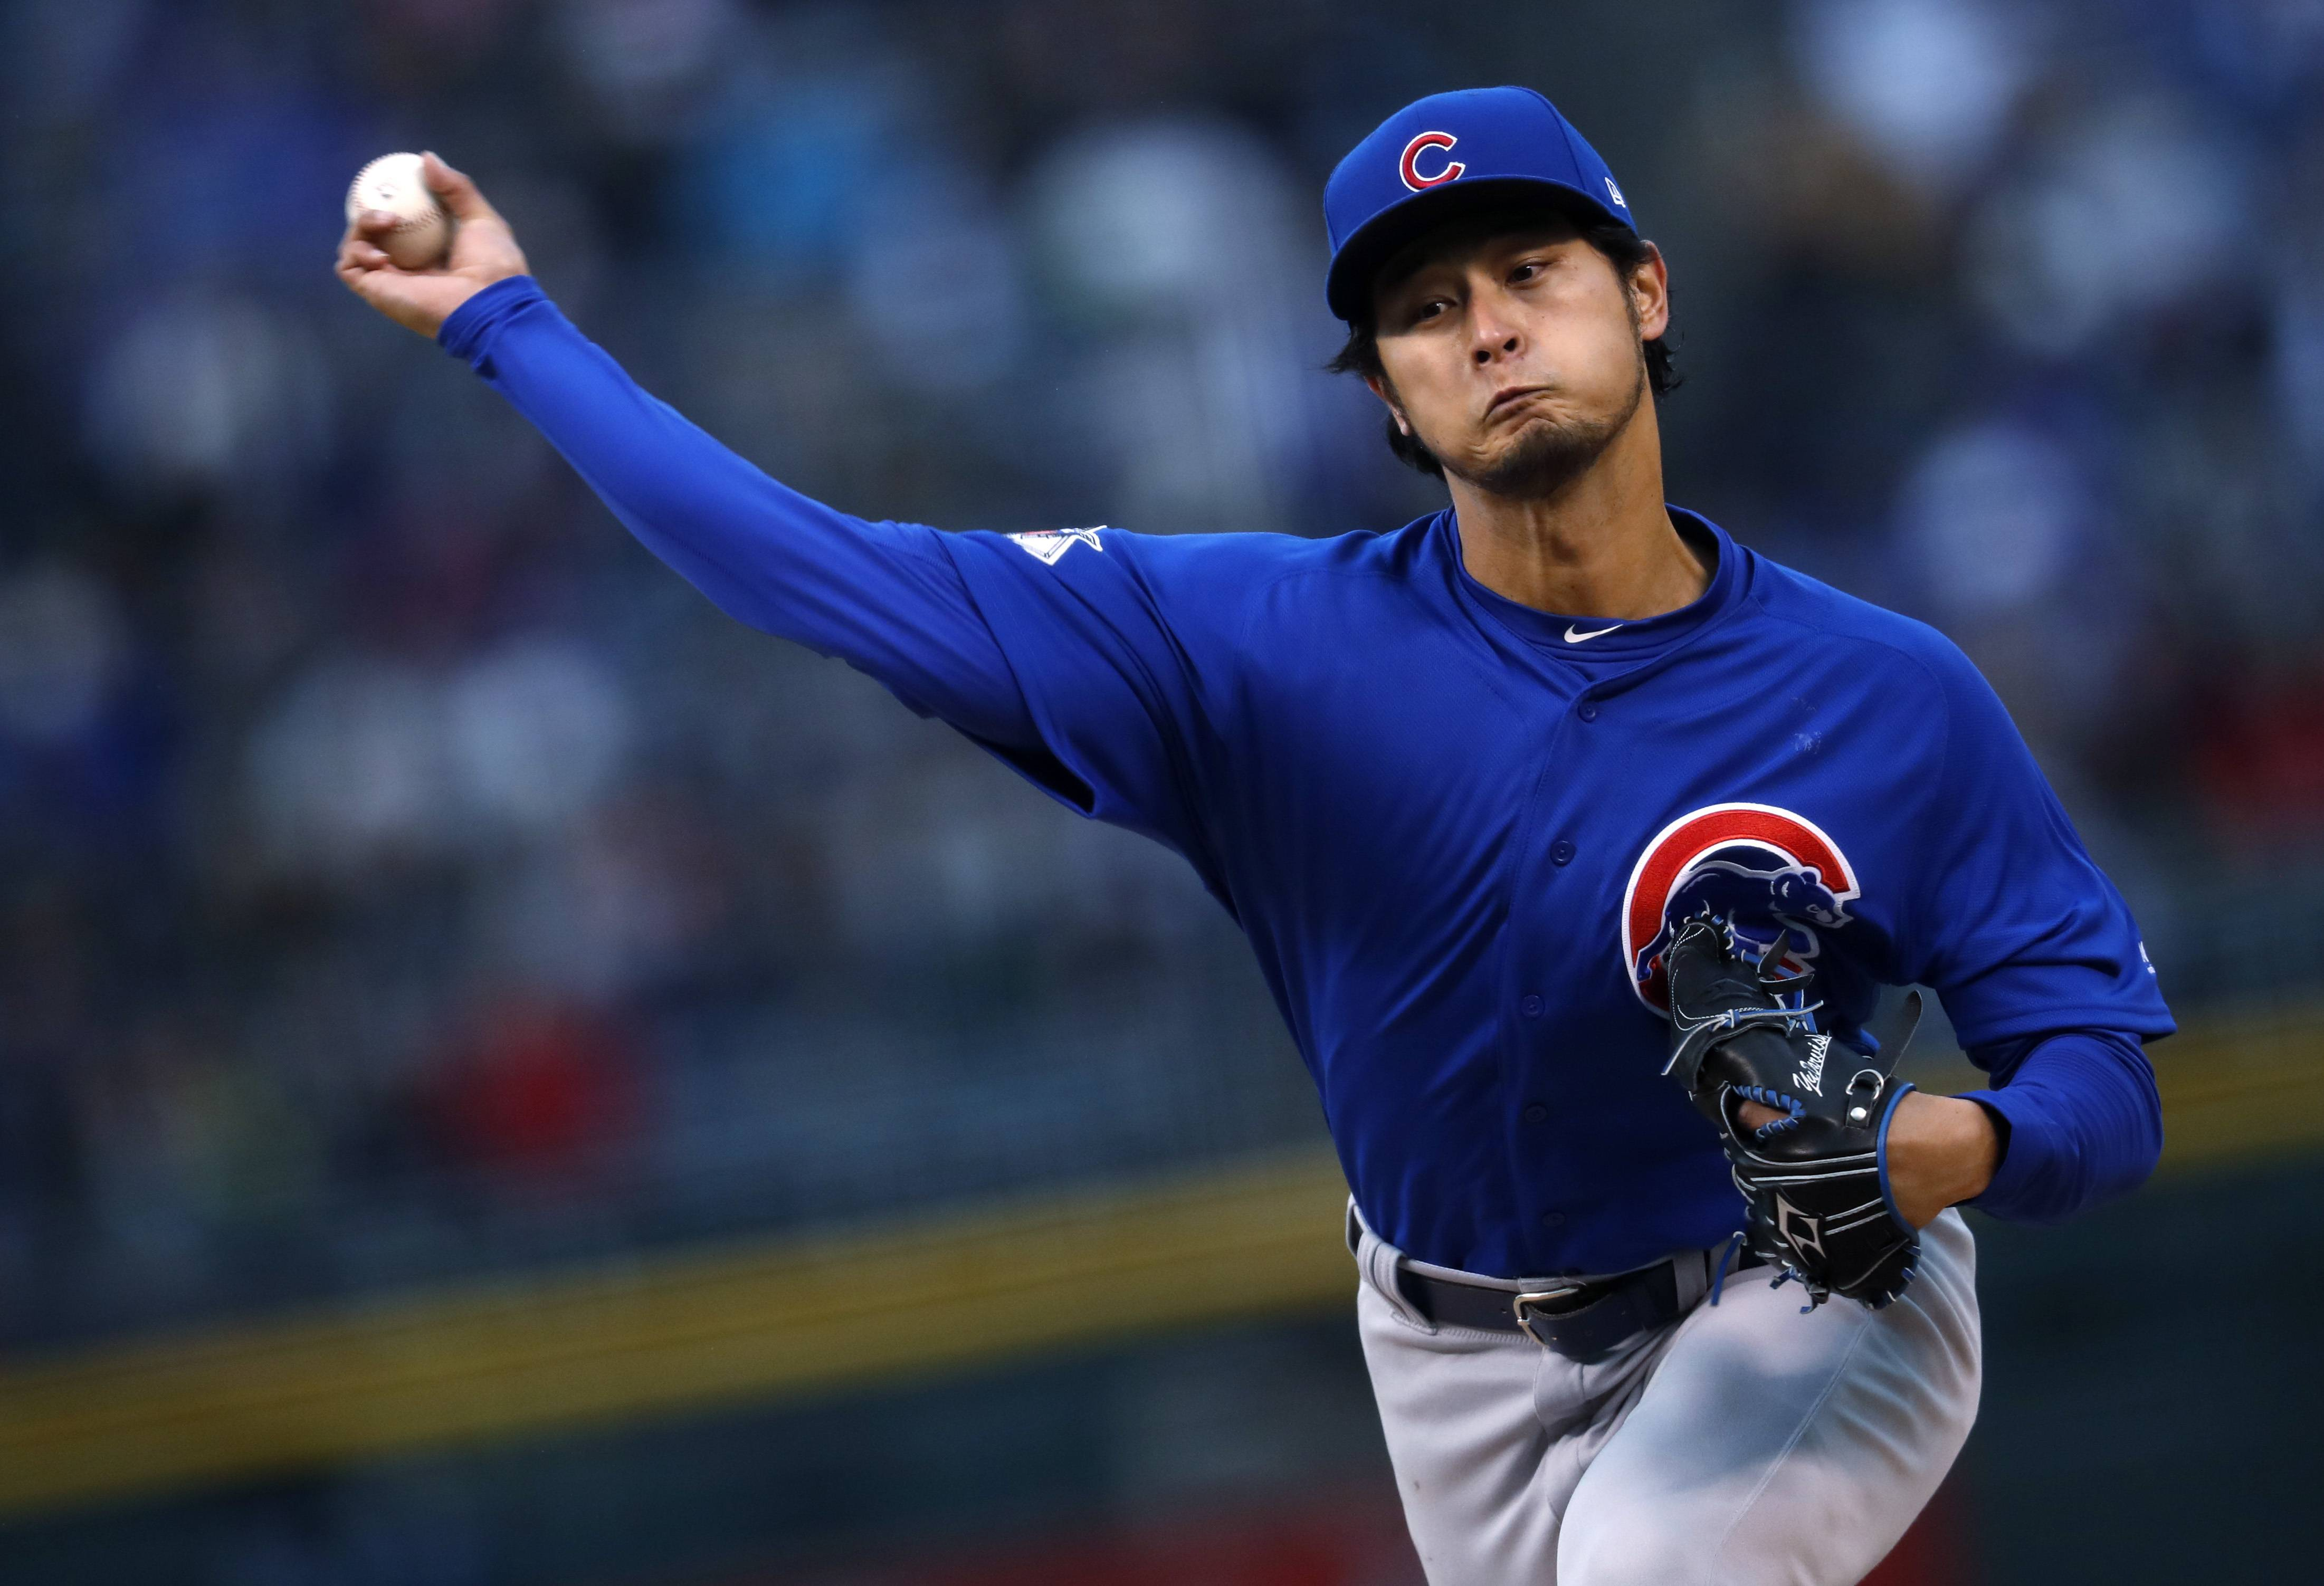 Cubs manager Maddon still has faith in Darvish